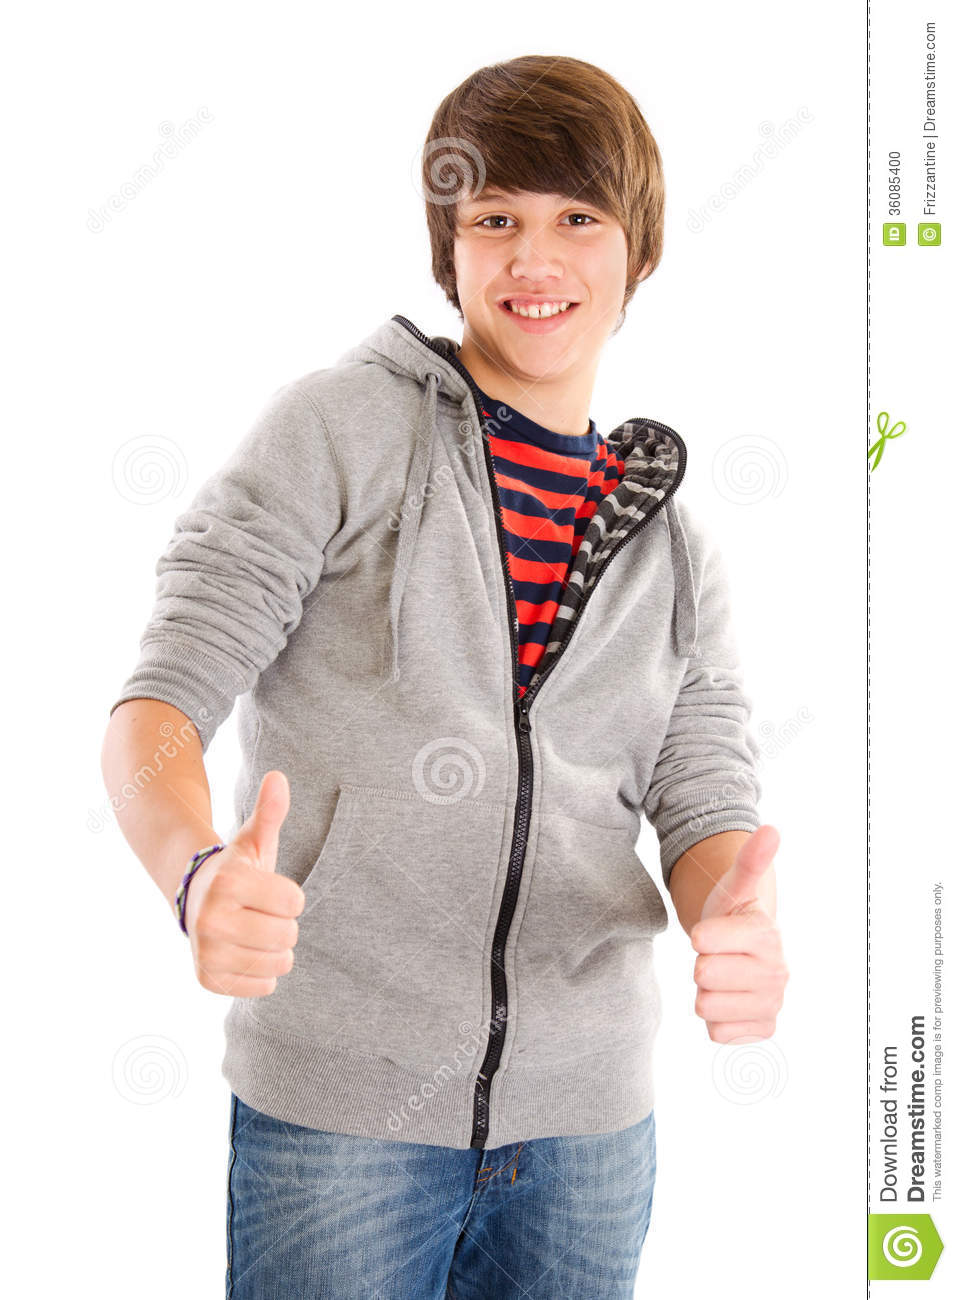 Smiling teenage boy with thumbs up stock photo image of reading male 36085400 - Image of teen ...